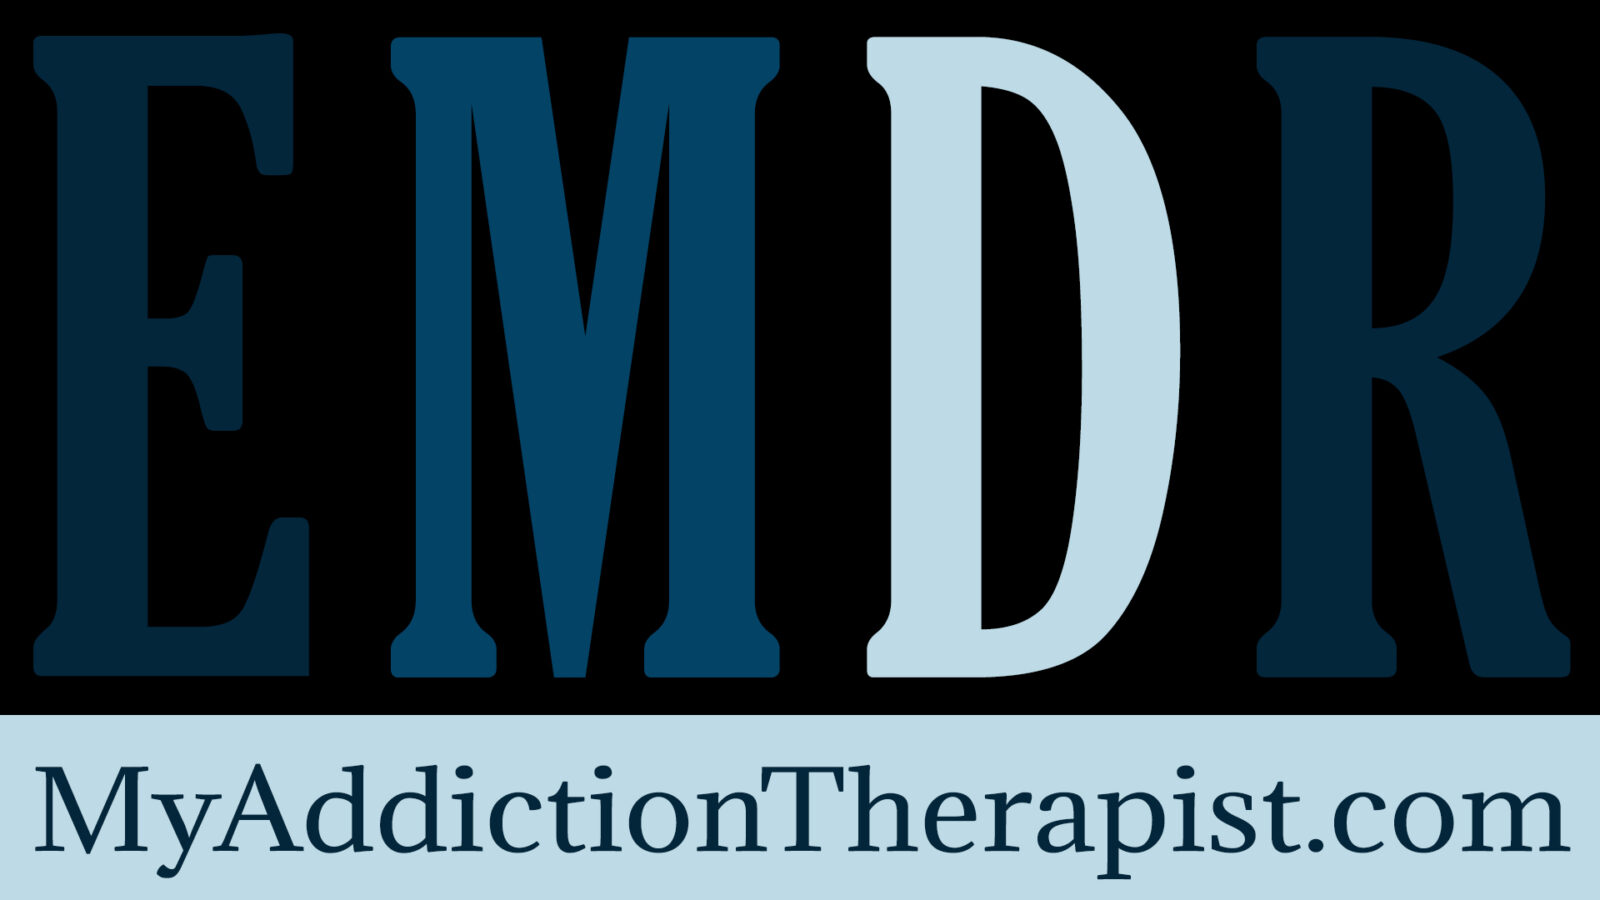 Eye Movement Desensitization Reprocessing (EMDR) therapy